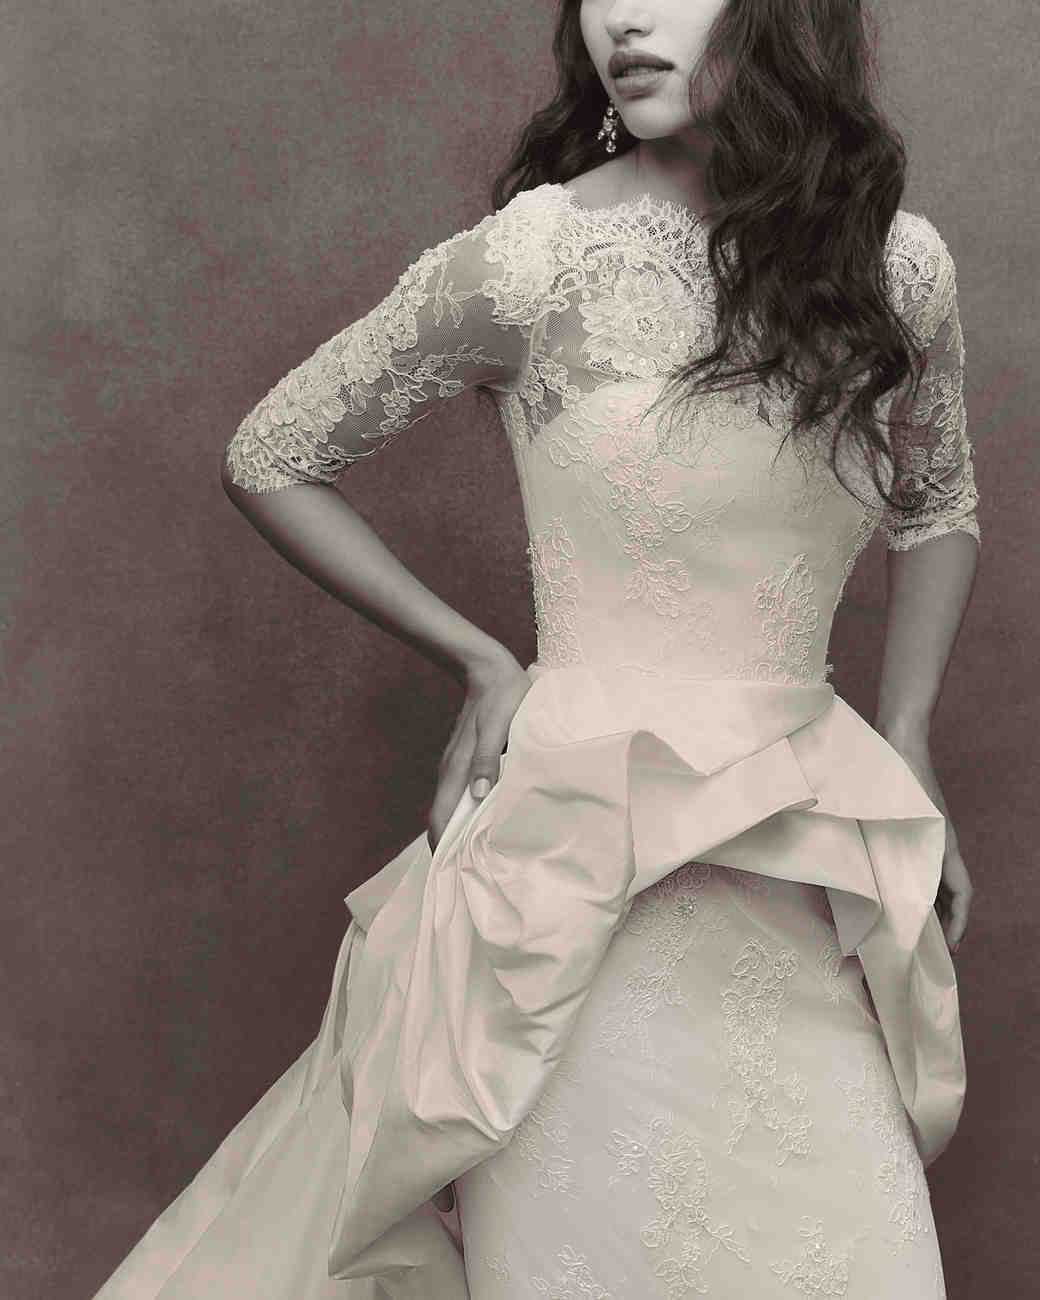 rembroidered-lace-141-bw-mwd110255.jpg